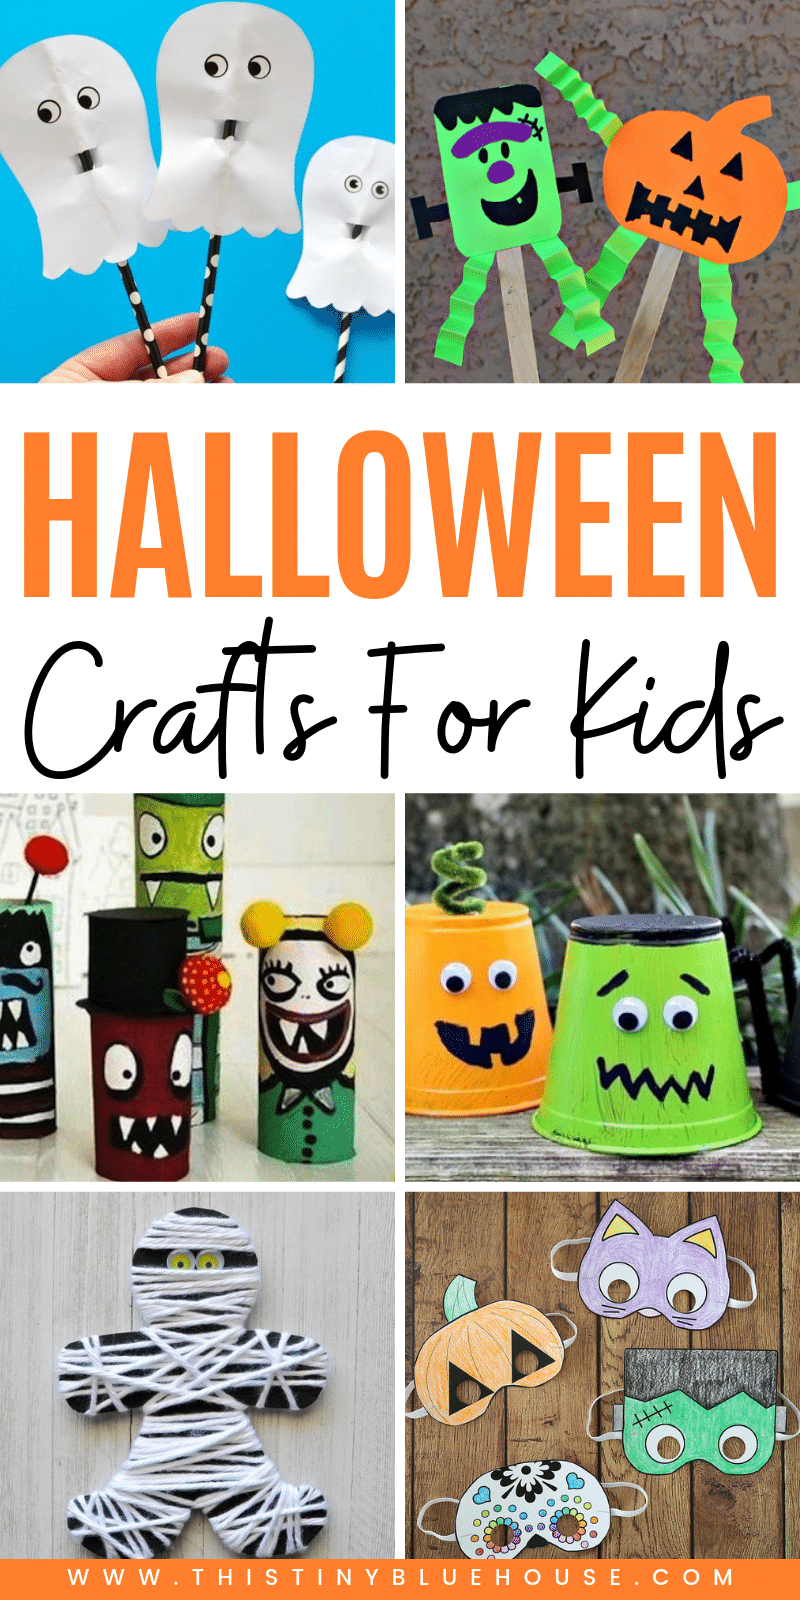 here are over 70 of the best cute and spooky Halloween crafts for kids. From pumpkins to ghosts and witches these Halloween crafts for kids are guaranteed to get your kids excited about Halloween. #halloweencrafts #halloweencraftsfortoddlers #halloweencraftsforkidstomake #halloweencraftsdiy #halloweencraftseasy #halloweencraftskindergarten #halloweencraftsforchildren